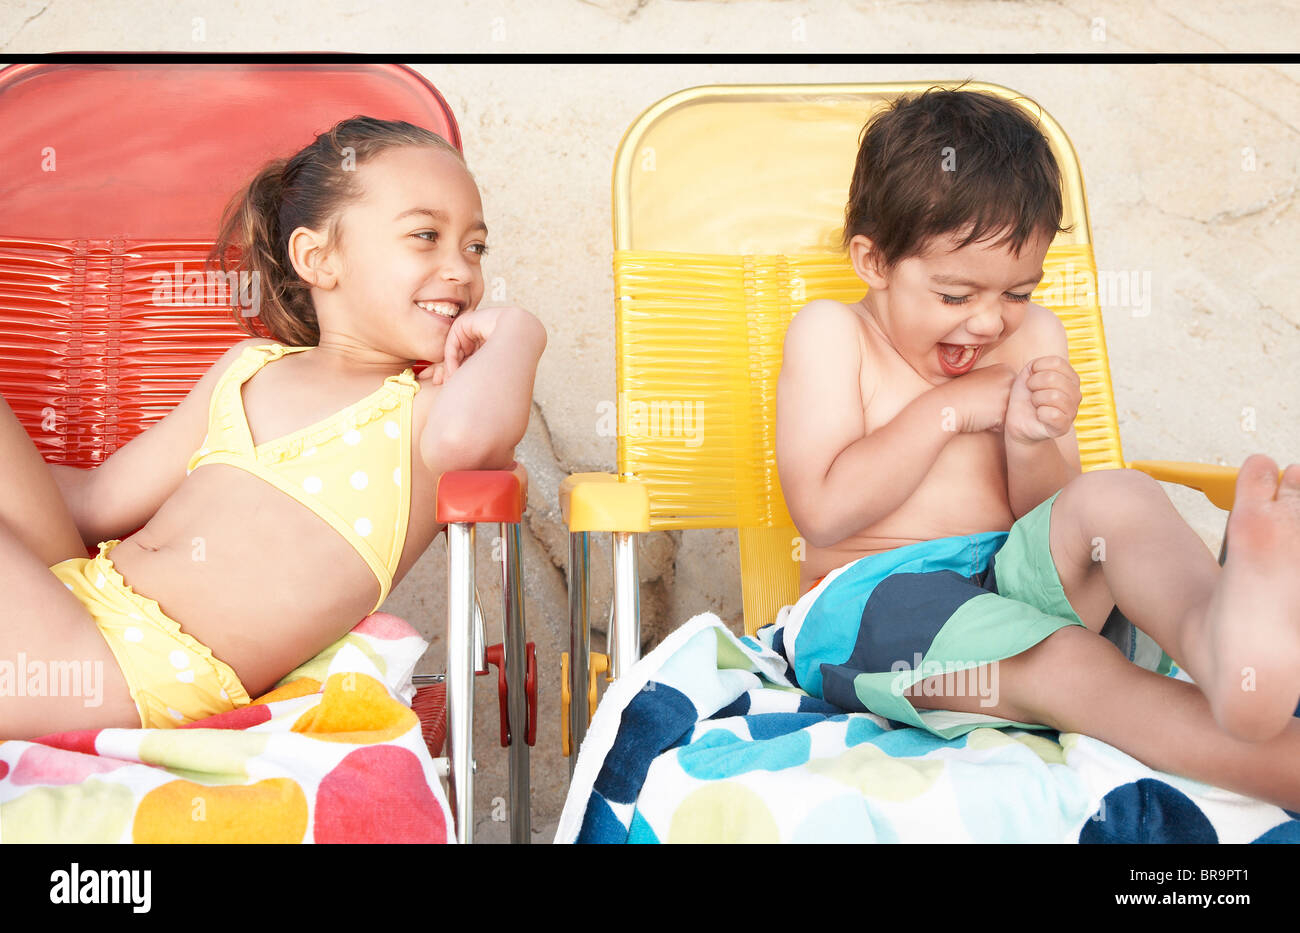 Kids in bathing suits on lounge chairs Stock Photo